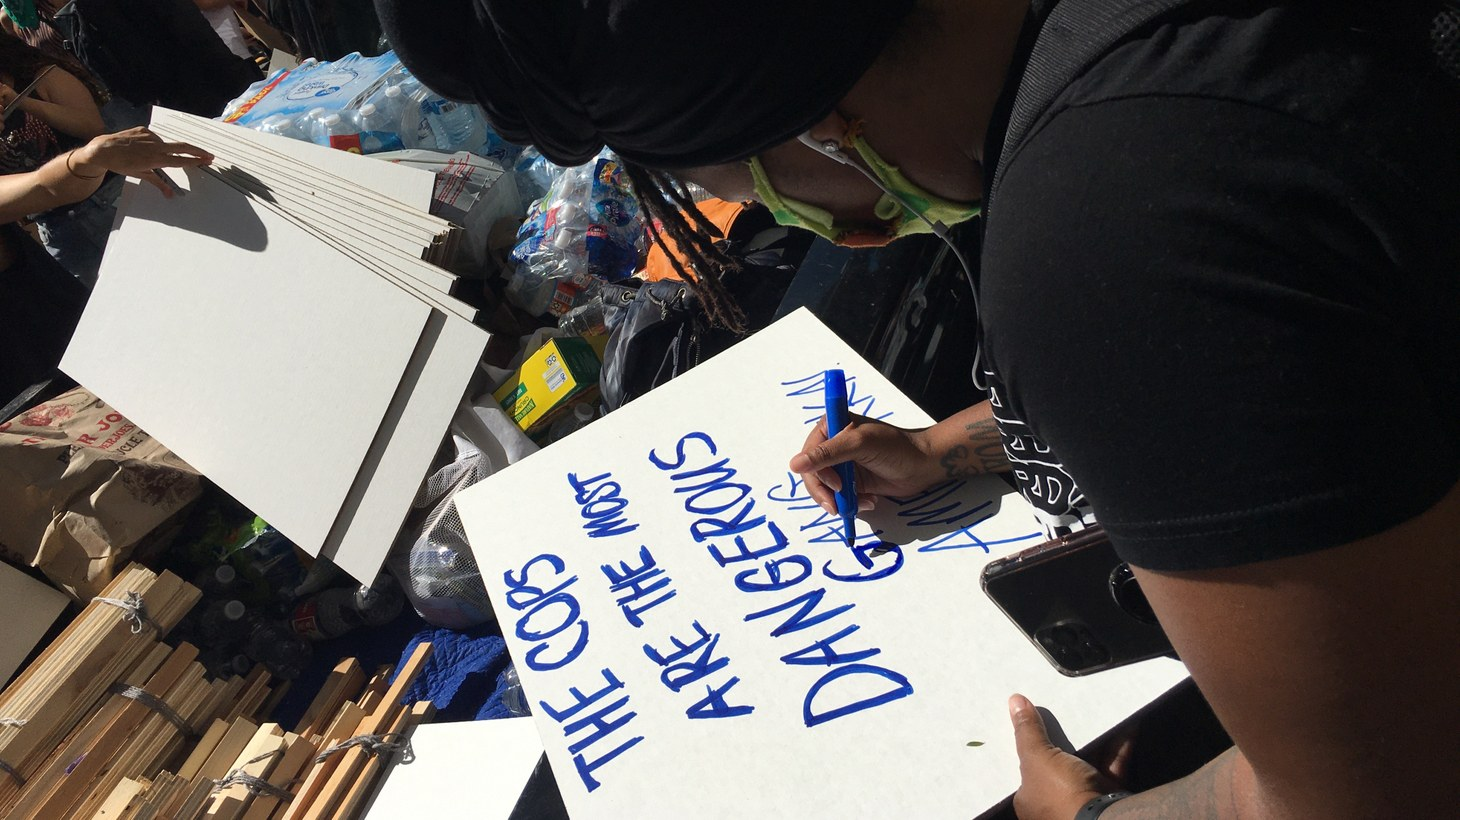 A participant makes a sign at Sunday's protest.